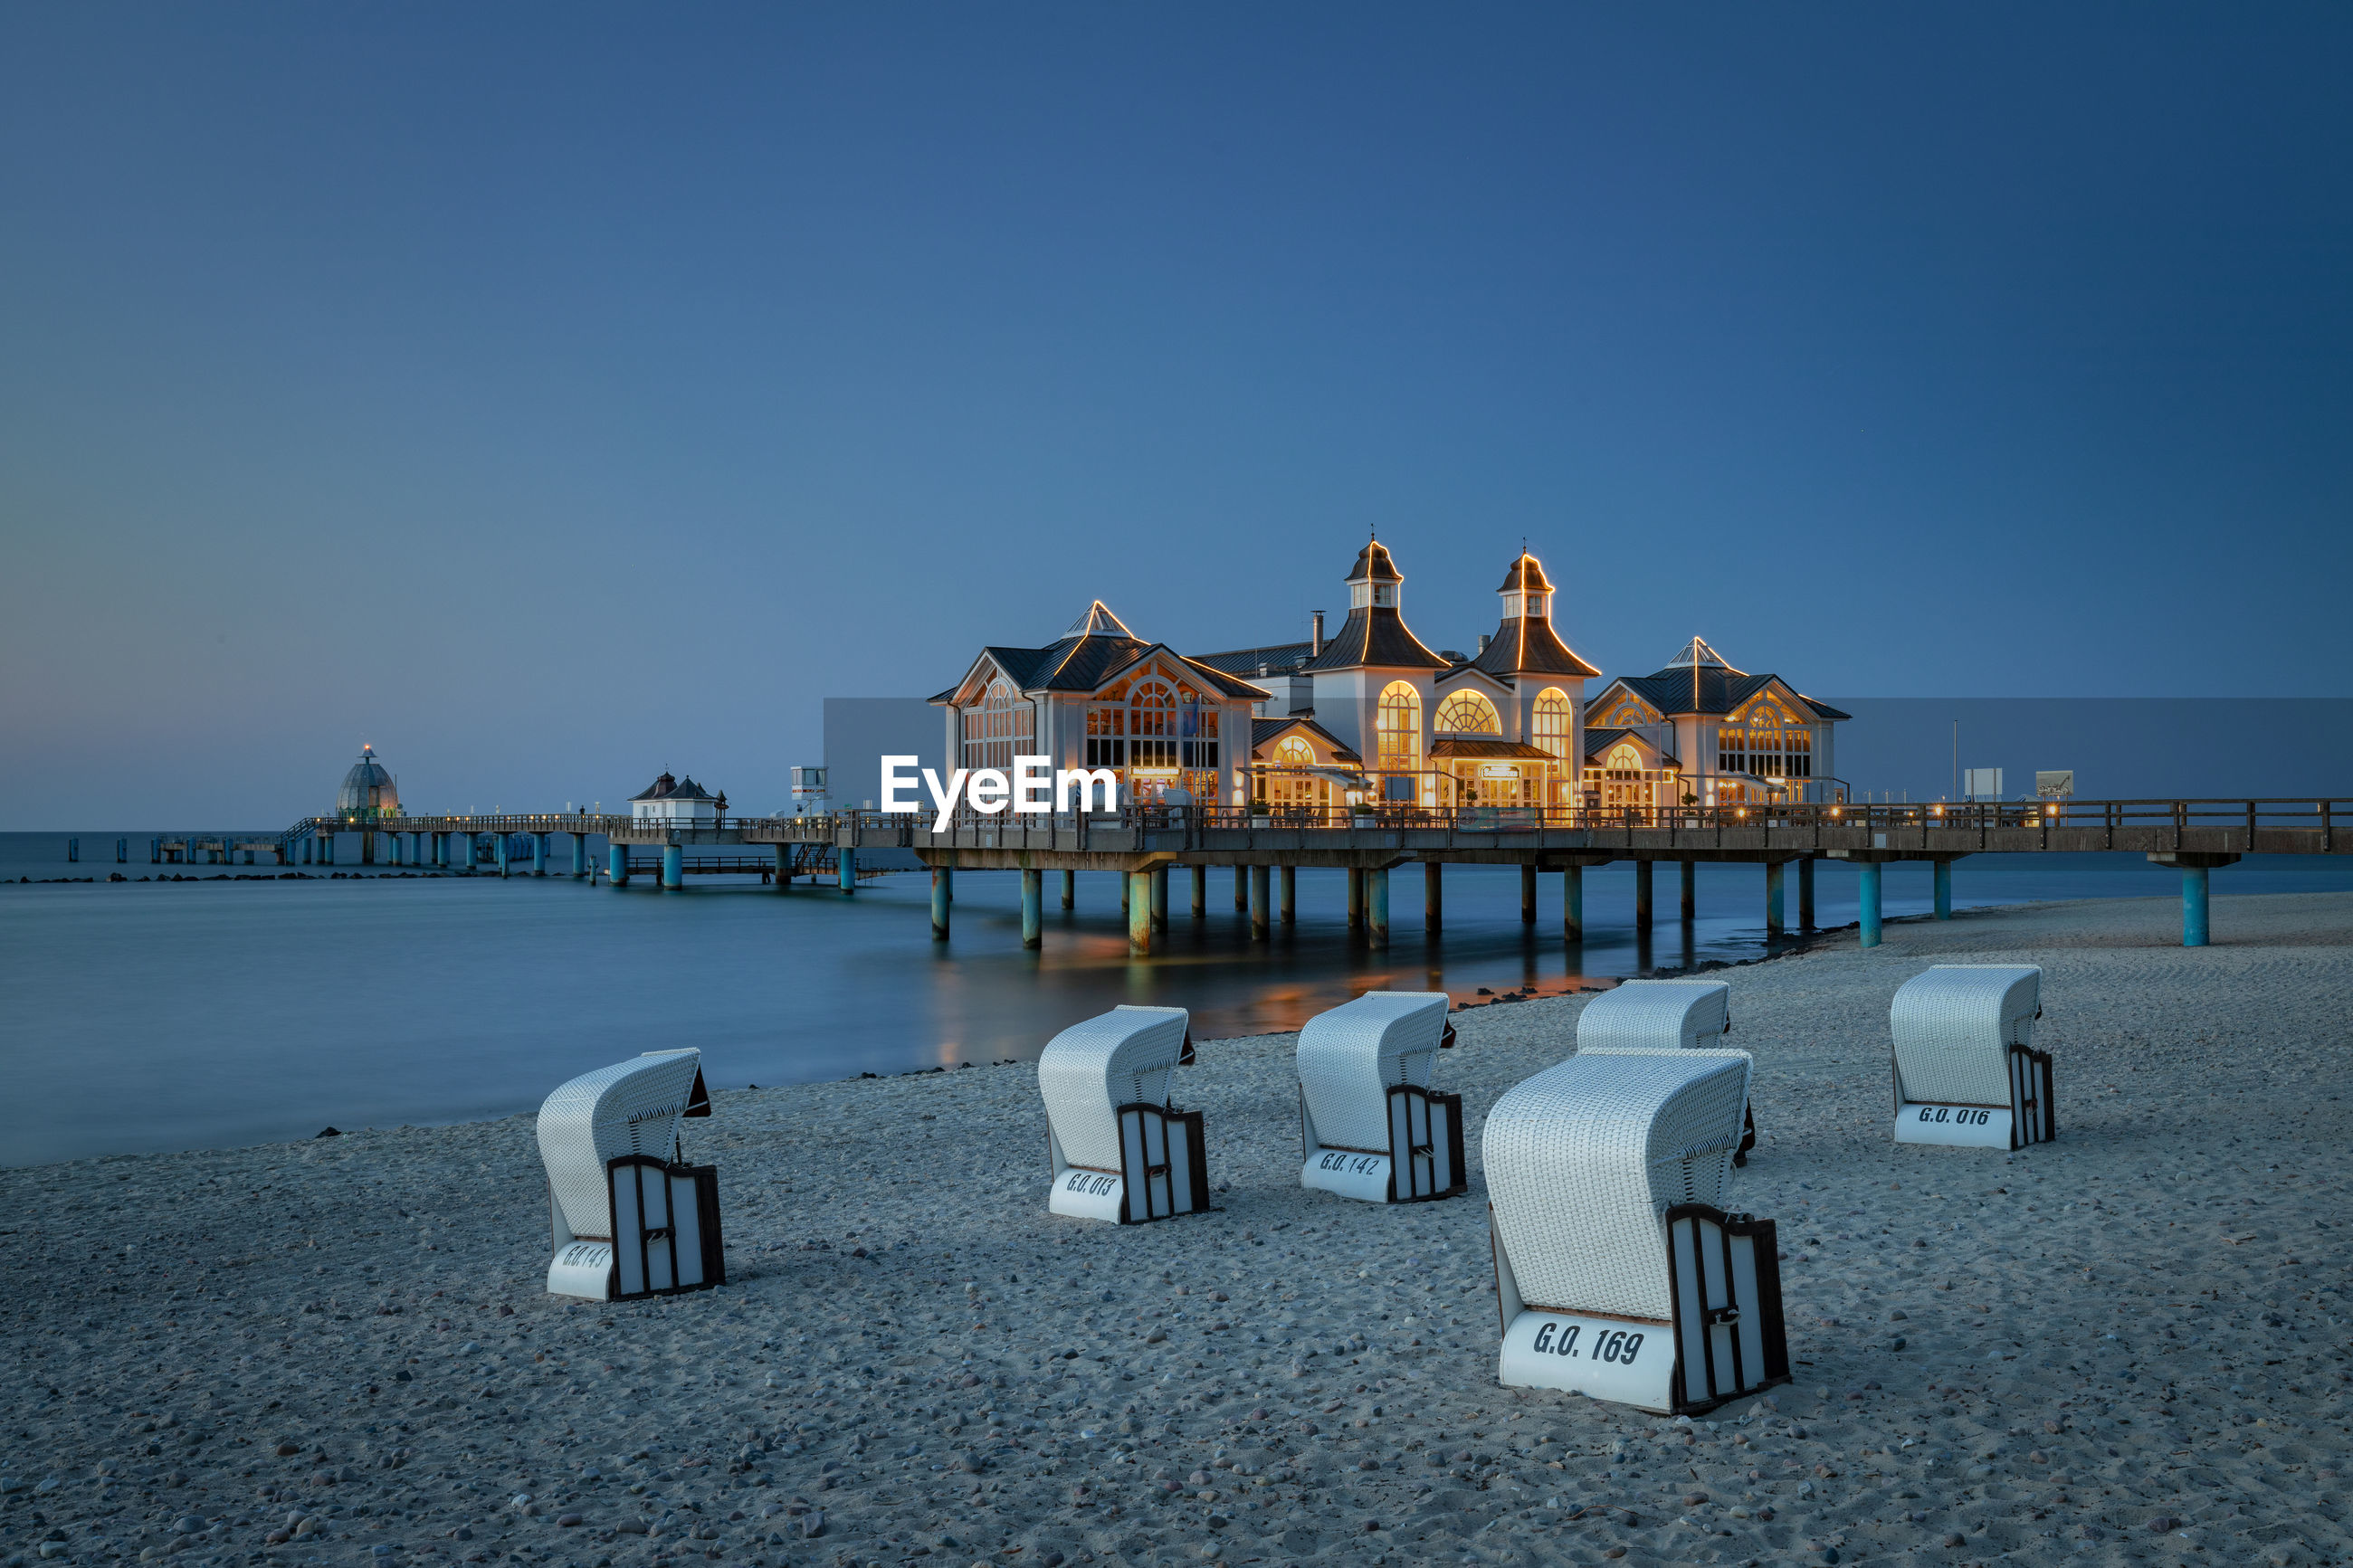 Hooded chairs at beach by stilt houses over sea against clear sky